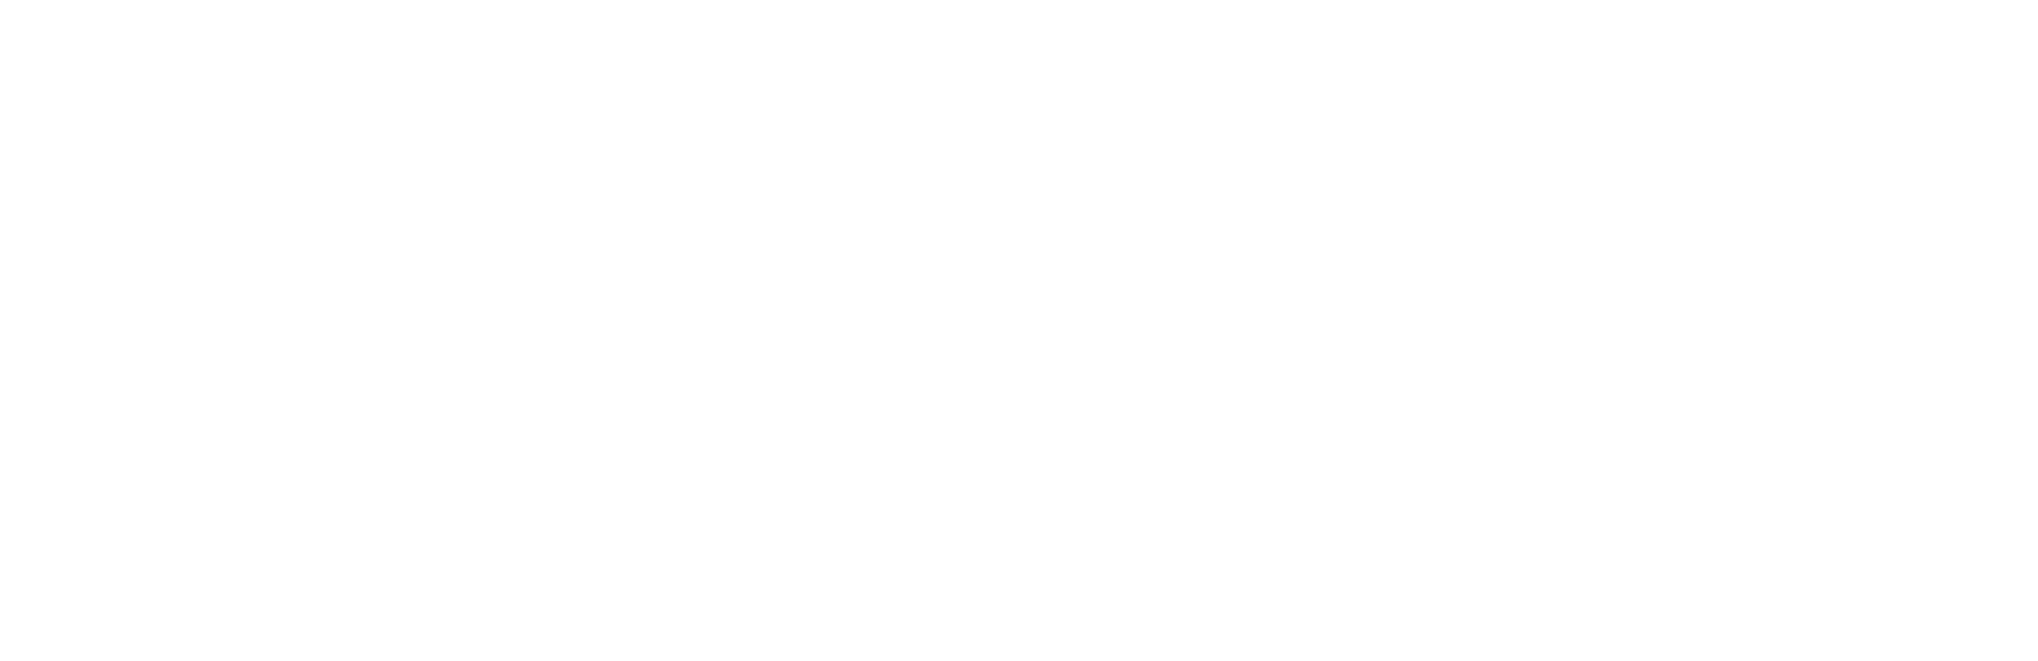 virtual_brothers